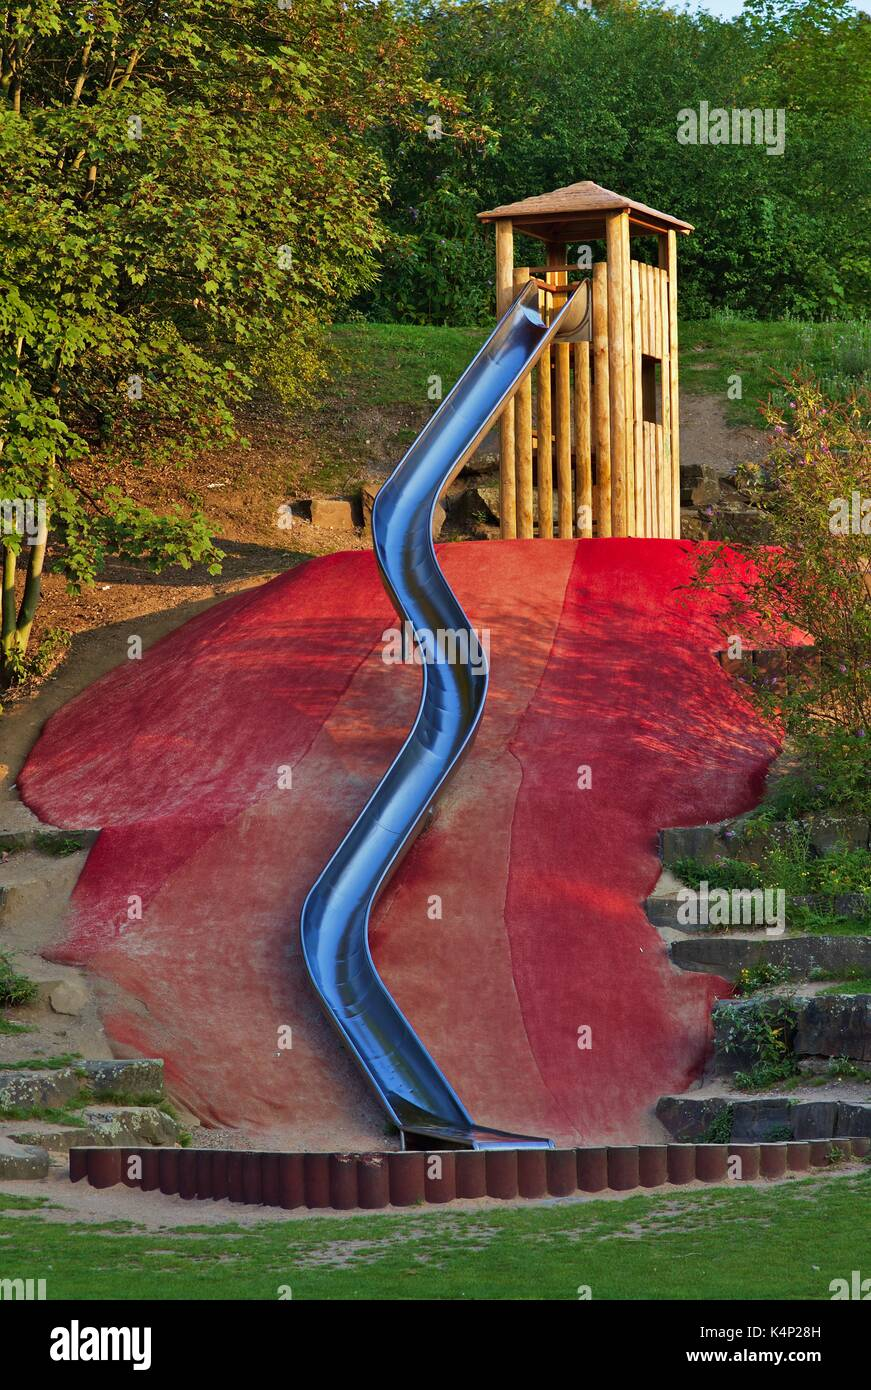 large-metal-slide-on-playground-wooden-tower-K4P28H.jpg